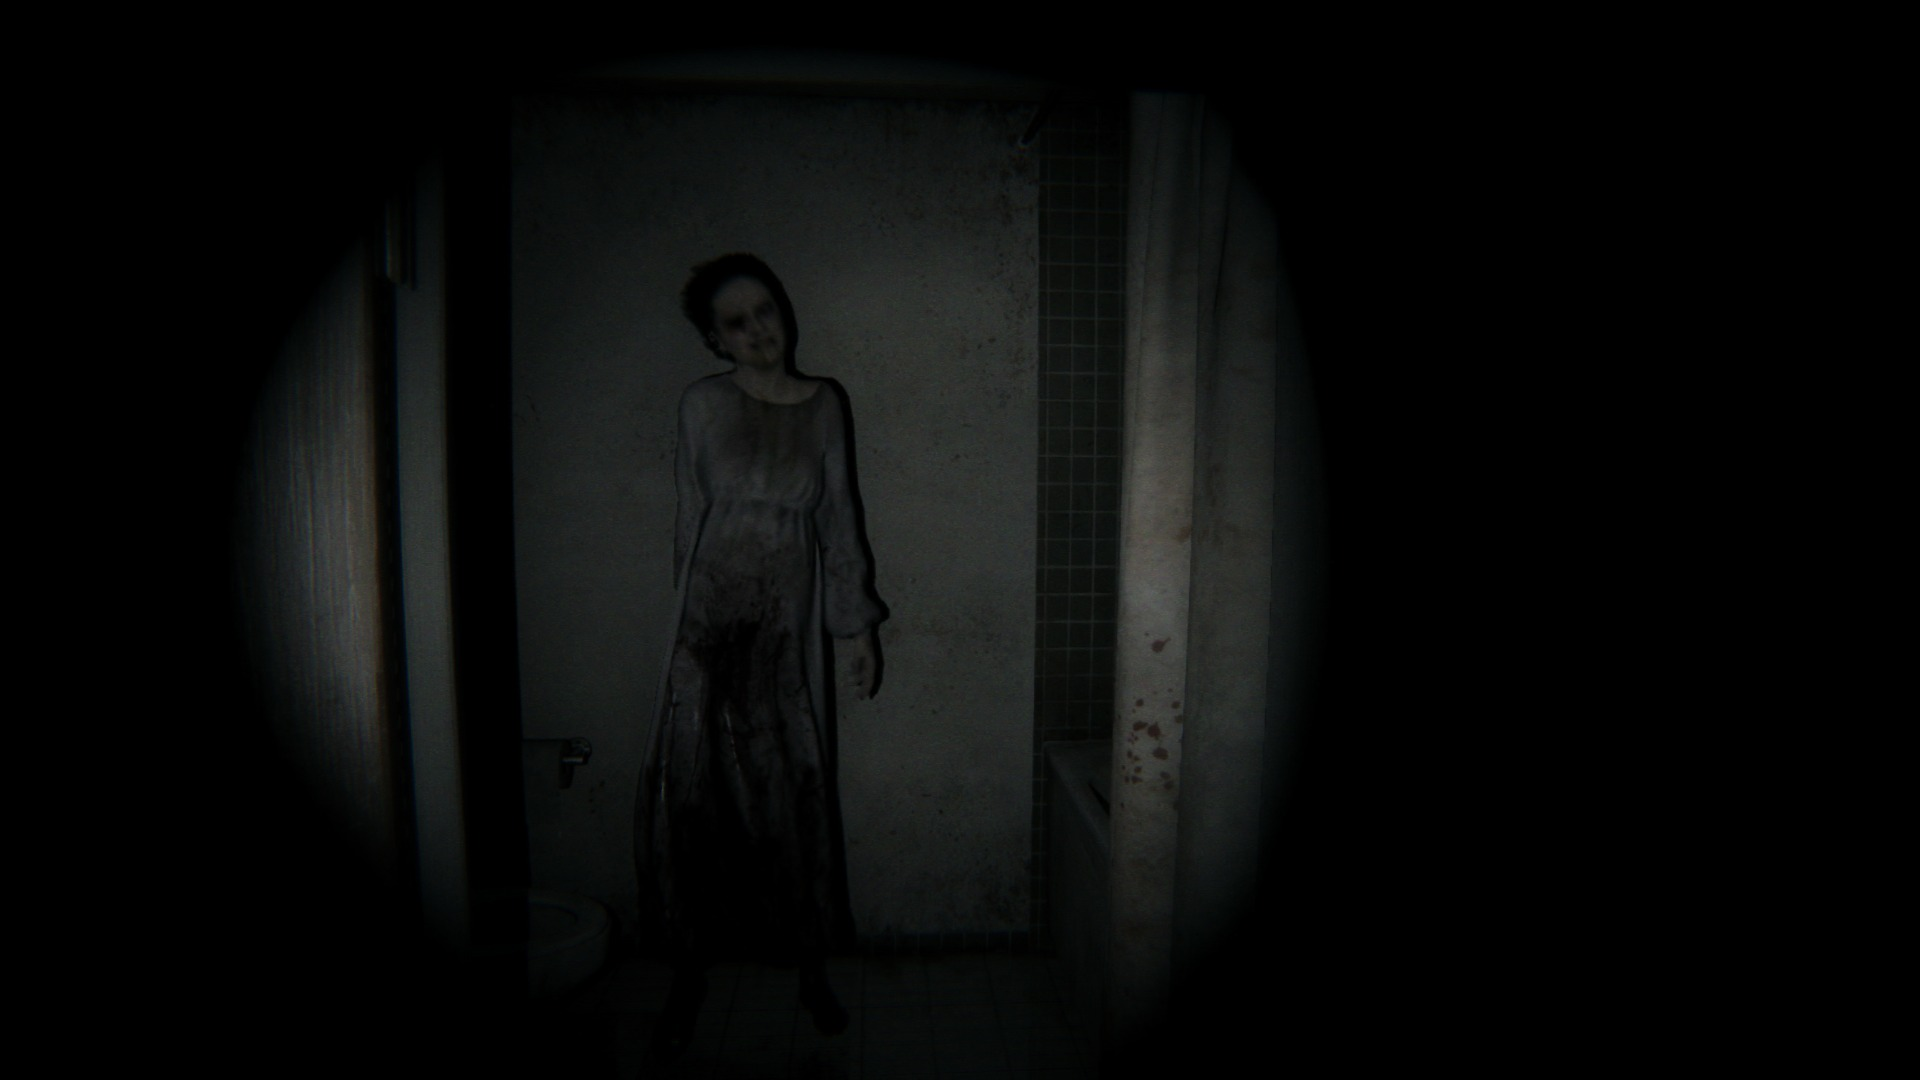 Sony Worldwide Studios boss would love to see a game like P.T. on Project Morpheus